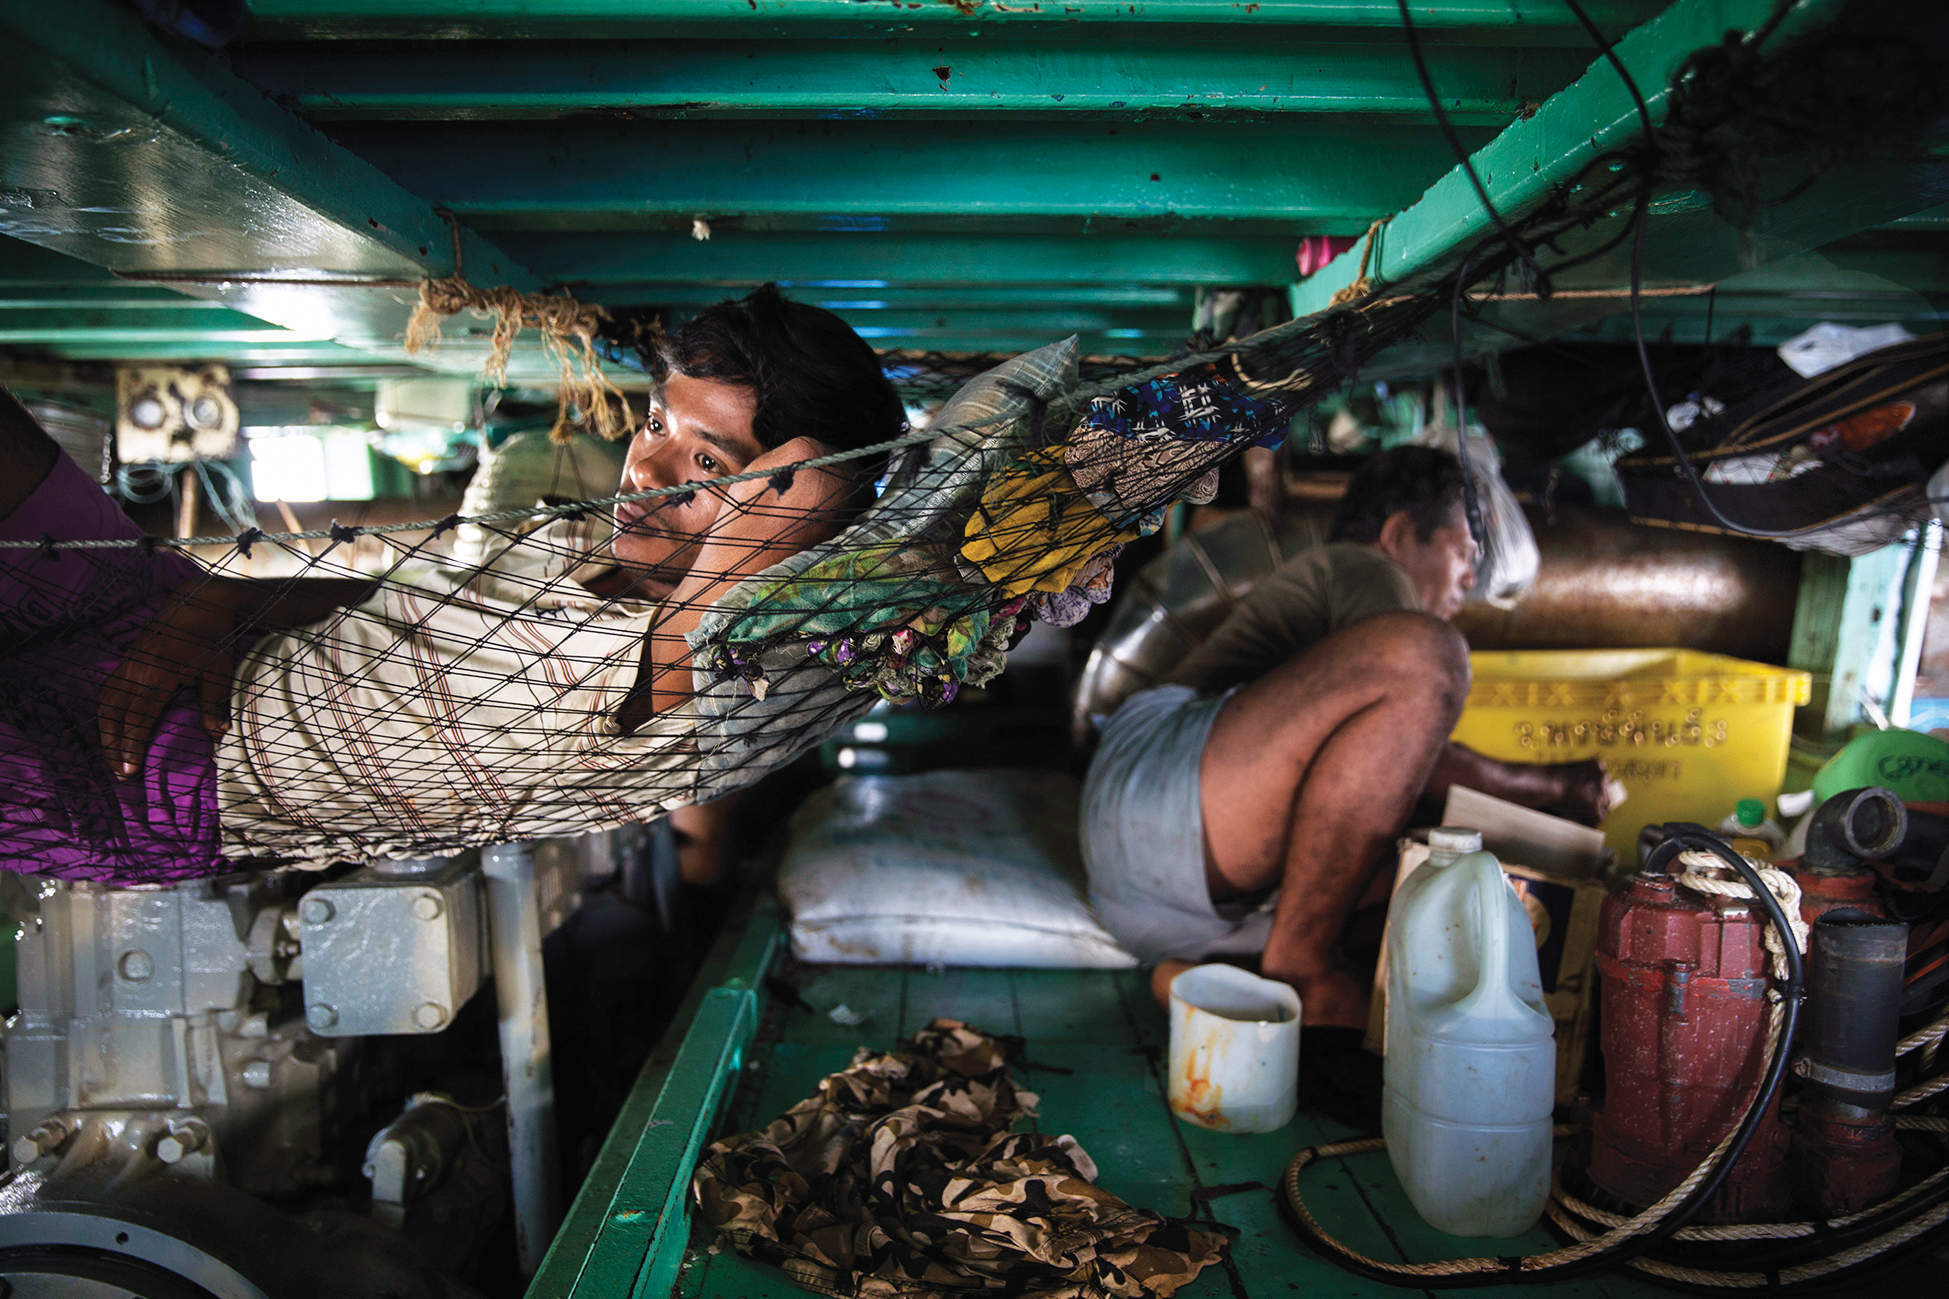 The marine, and human, costs of illegal fishing